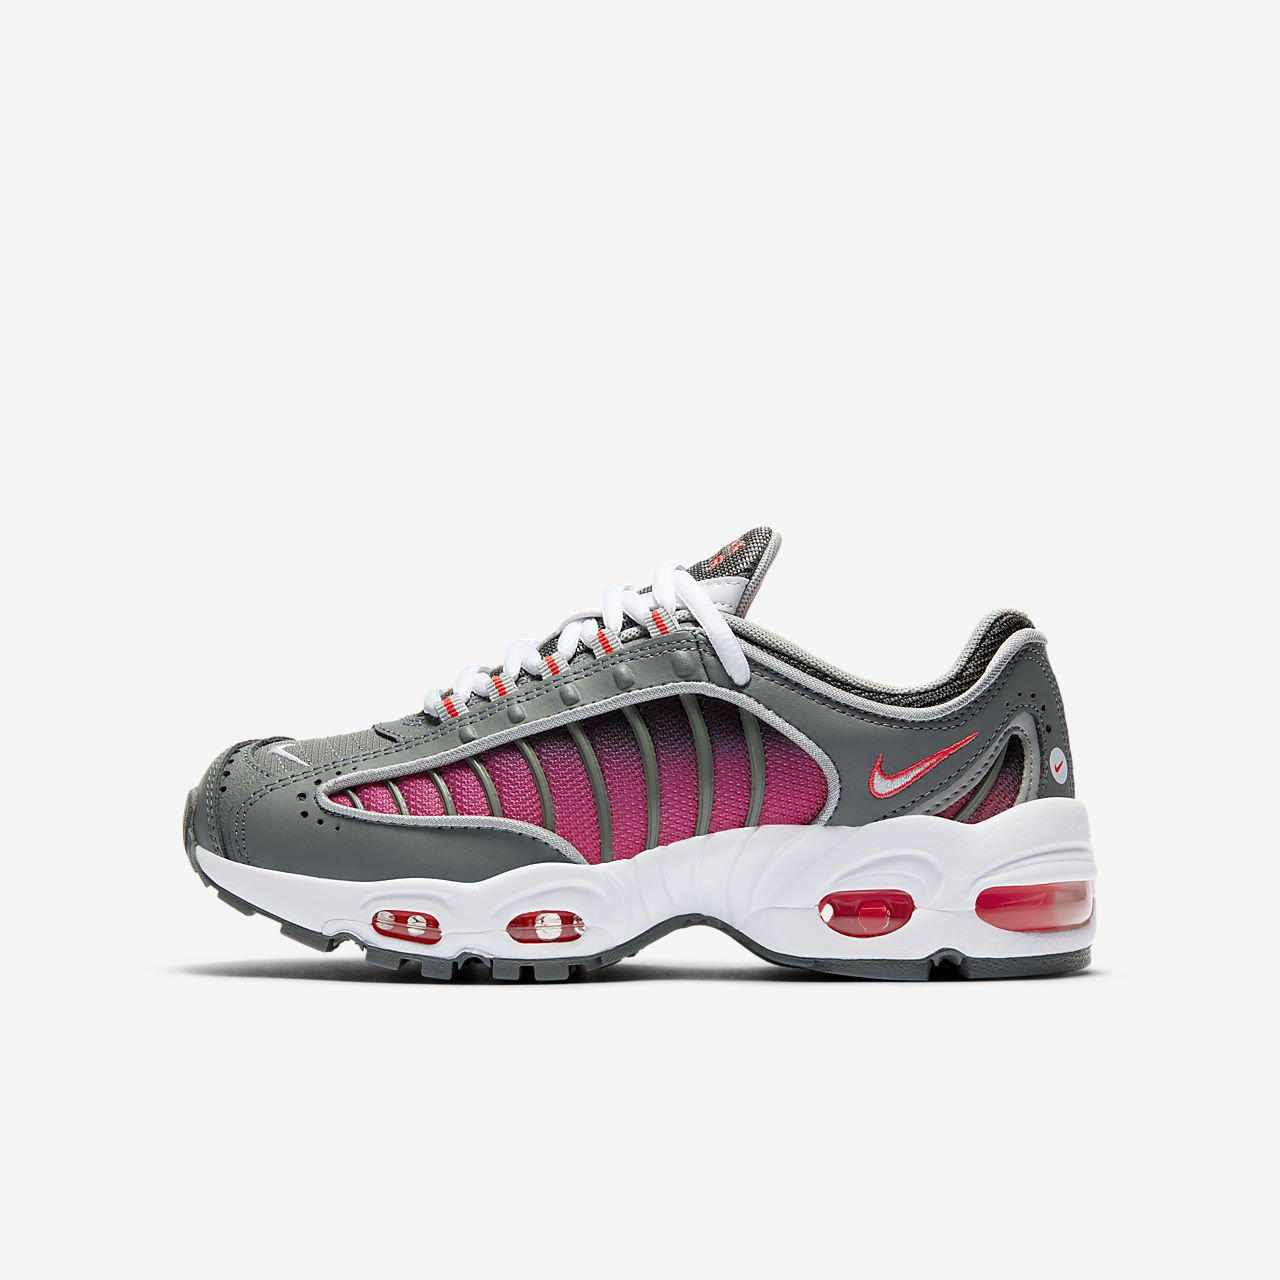 Nike Air Max Tailwind IV Older Kids' Shoe